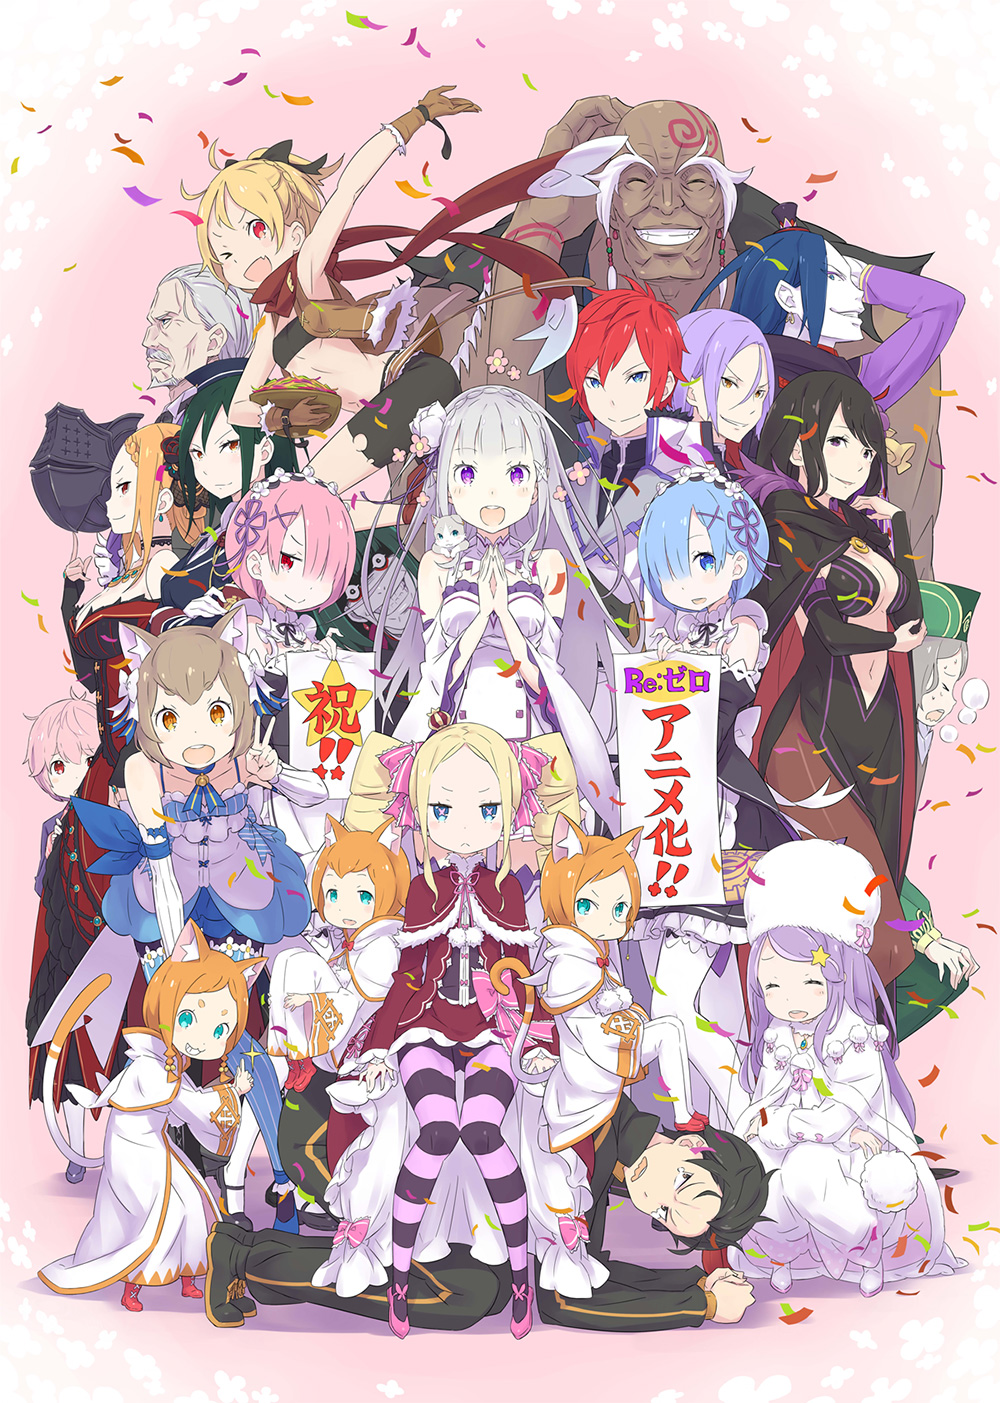 Re-Zero-Kara-Hajimeru-Isekai-Seikatsu-Anime-Announcement-Image